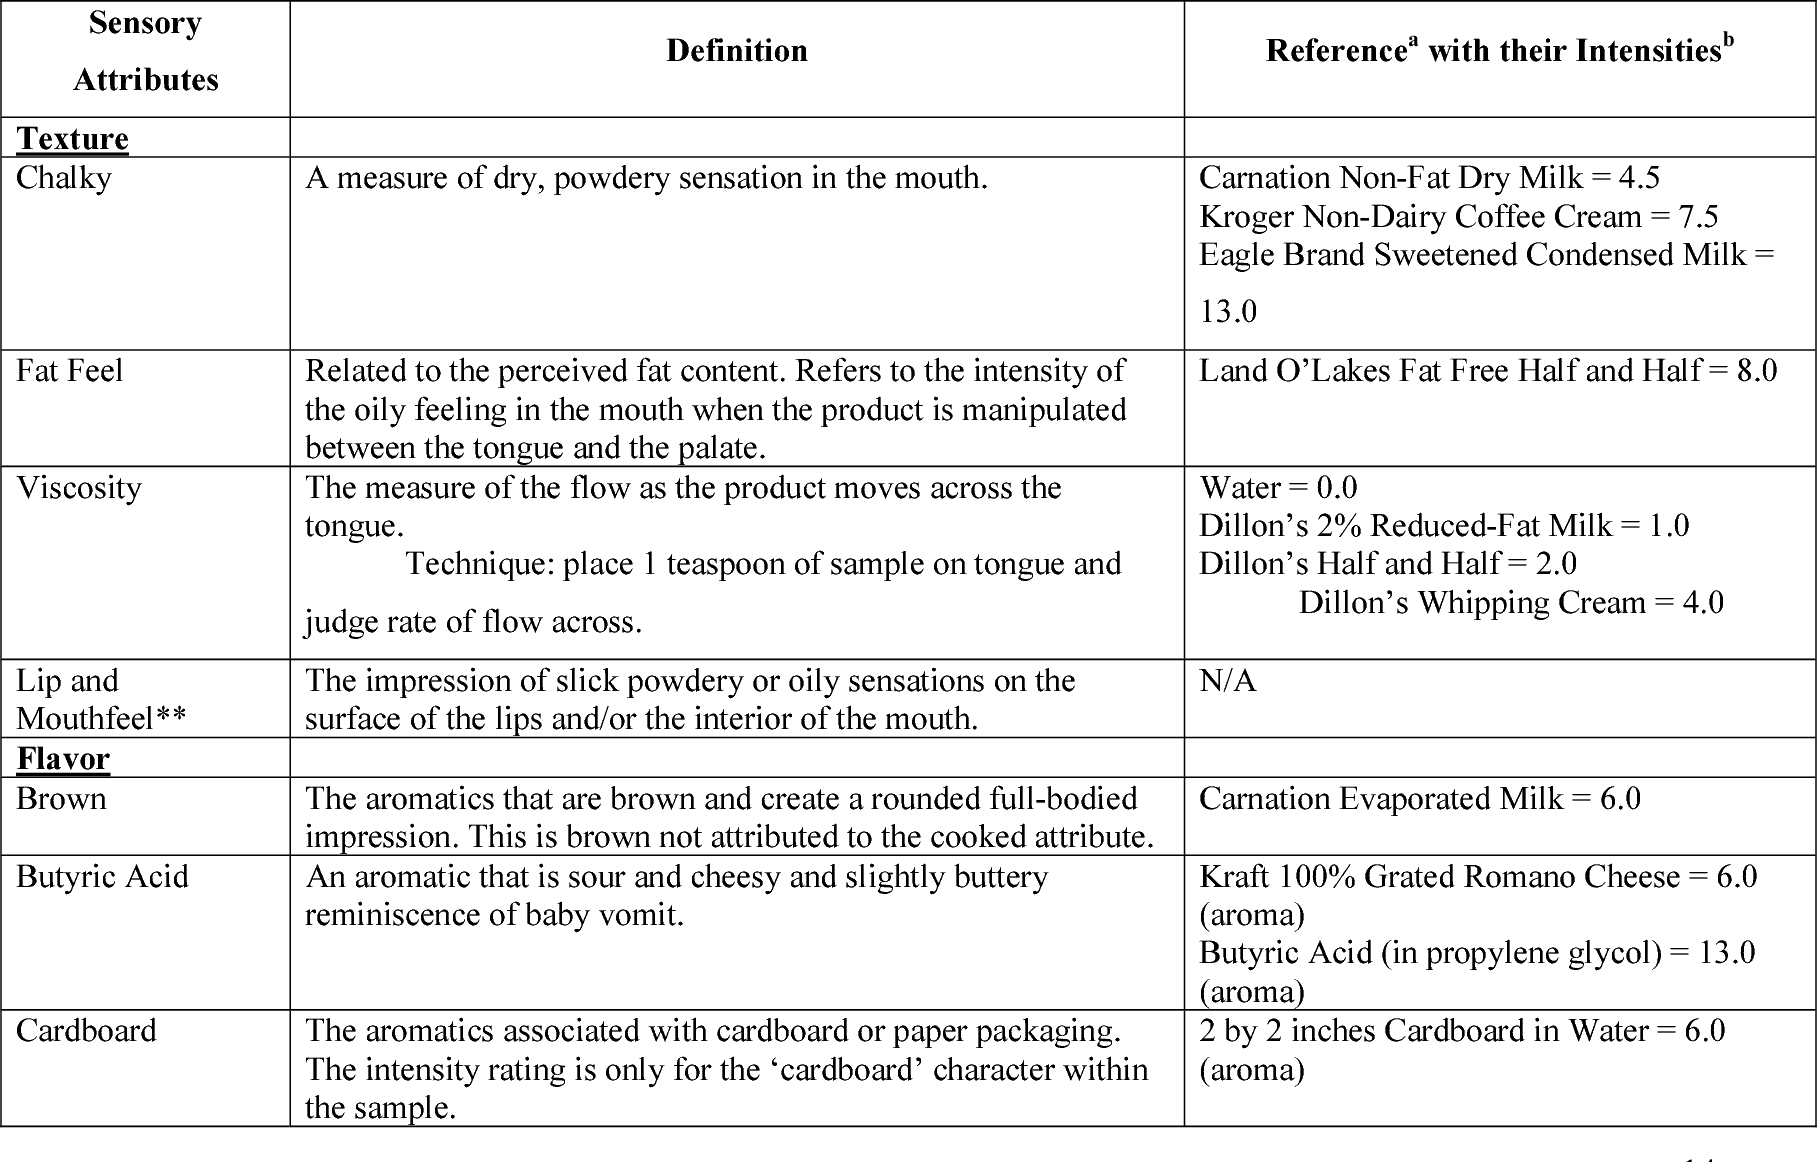 Table 2 From Comparison Of The Sensory Properties Of Uht Milk From